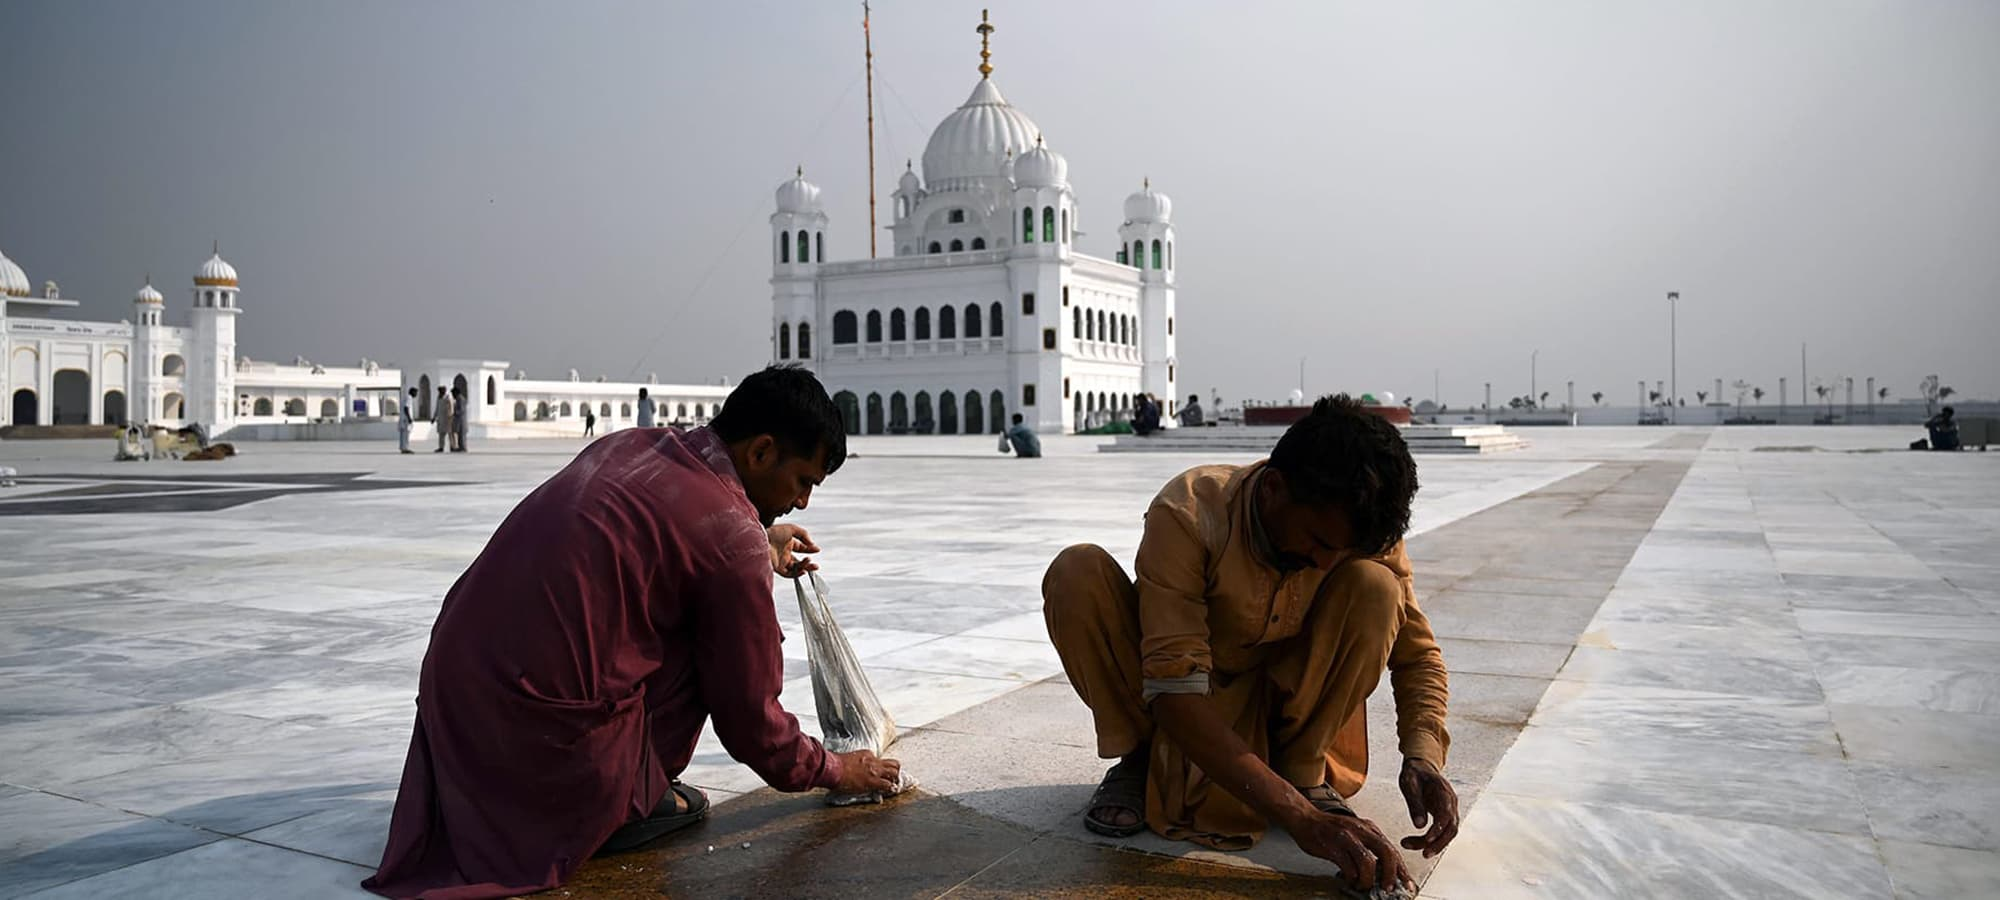 In this picture taken on November 6, 2019 workers shine a floor at the Shrine of Baba Guru Nanak Dev at the Gurdwara Darbar Sahib ahead of its opening, in the Pakistani town of Kartarpur near the Indian border. - Thousands of Sikh pilgrims are expected around the world to visit to Pakistan to celebrate the 550th birth anniversary of Sri Guru Nanak Dev which falls on November 12. (Photo by Aamir QURESHI / AFP) — AFP or licensors